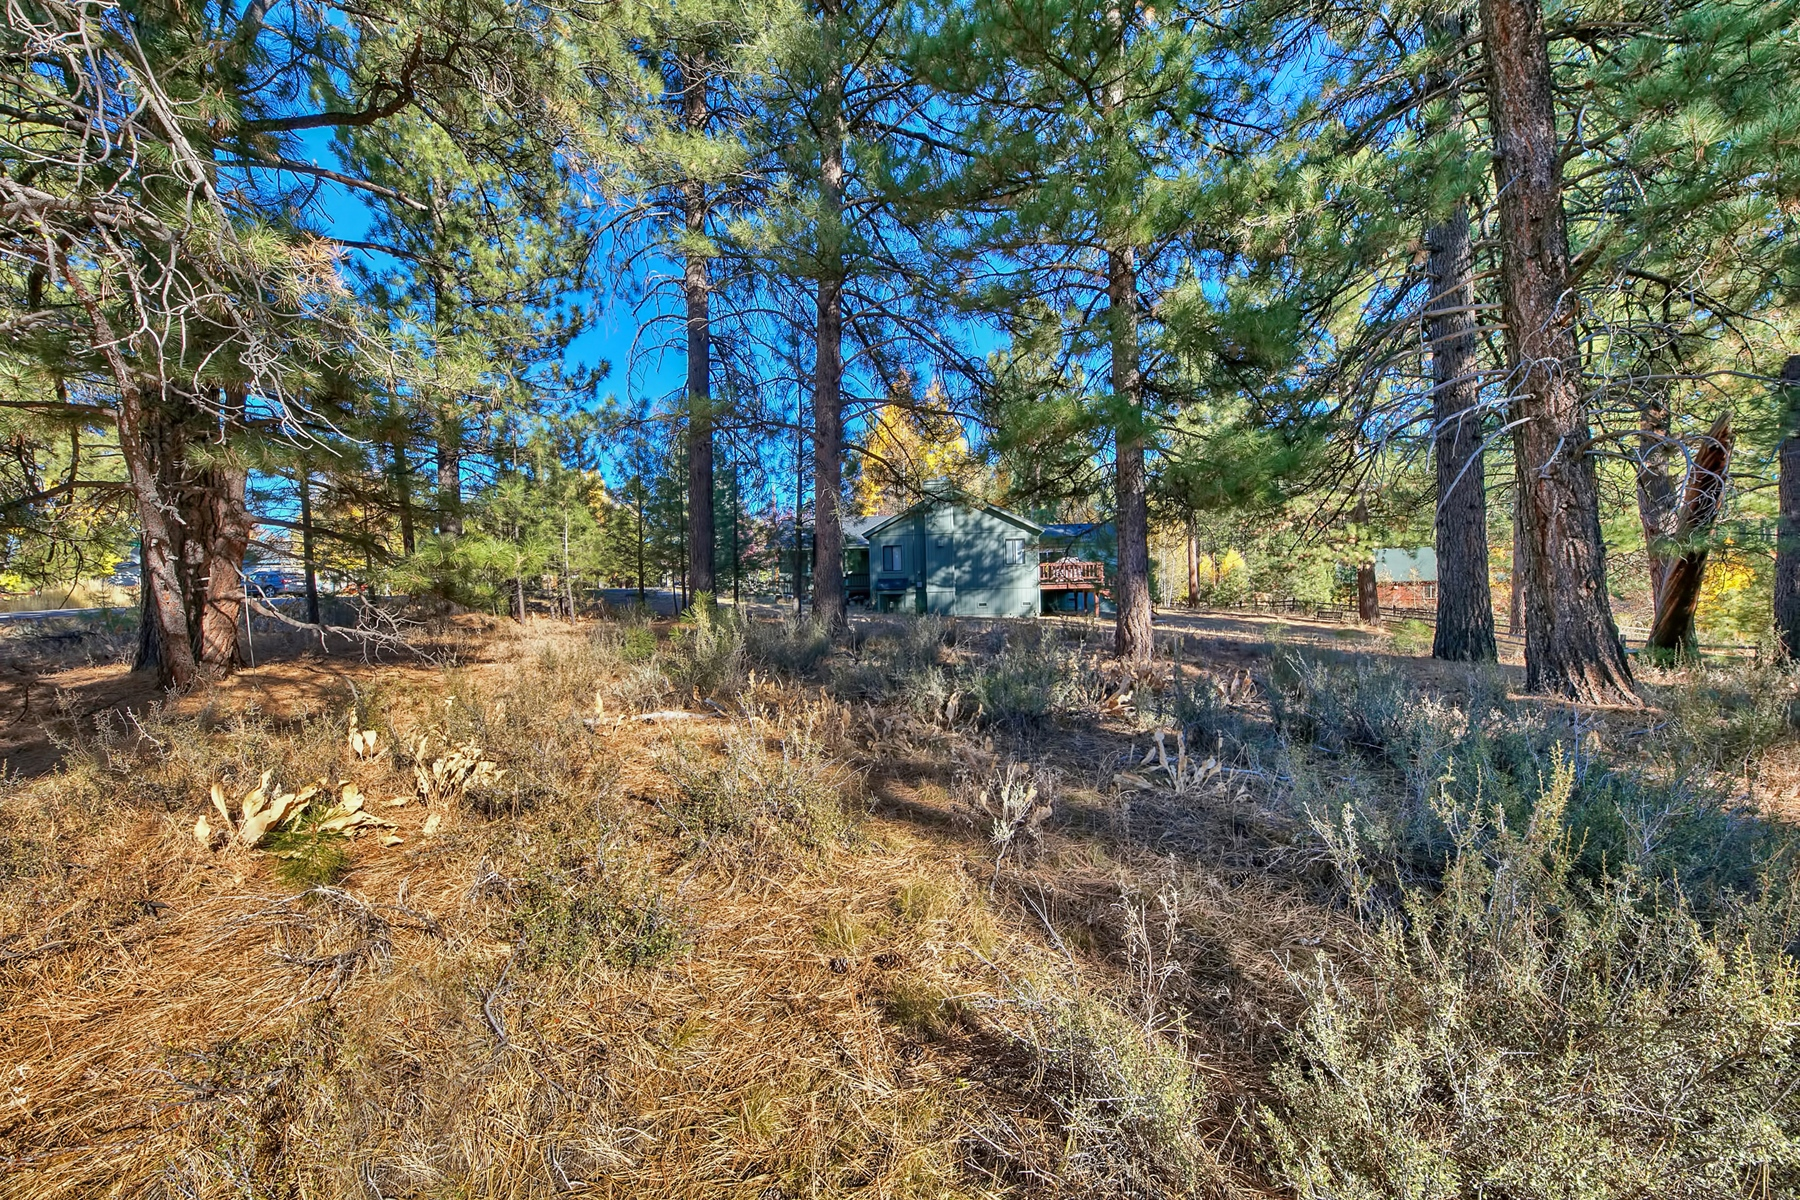 Additional photo for property listing at 15923 Rolands Way, Truckee Ca 96161 15923 Rolands Way Truckee, California 96161 United States